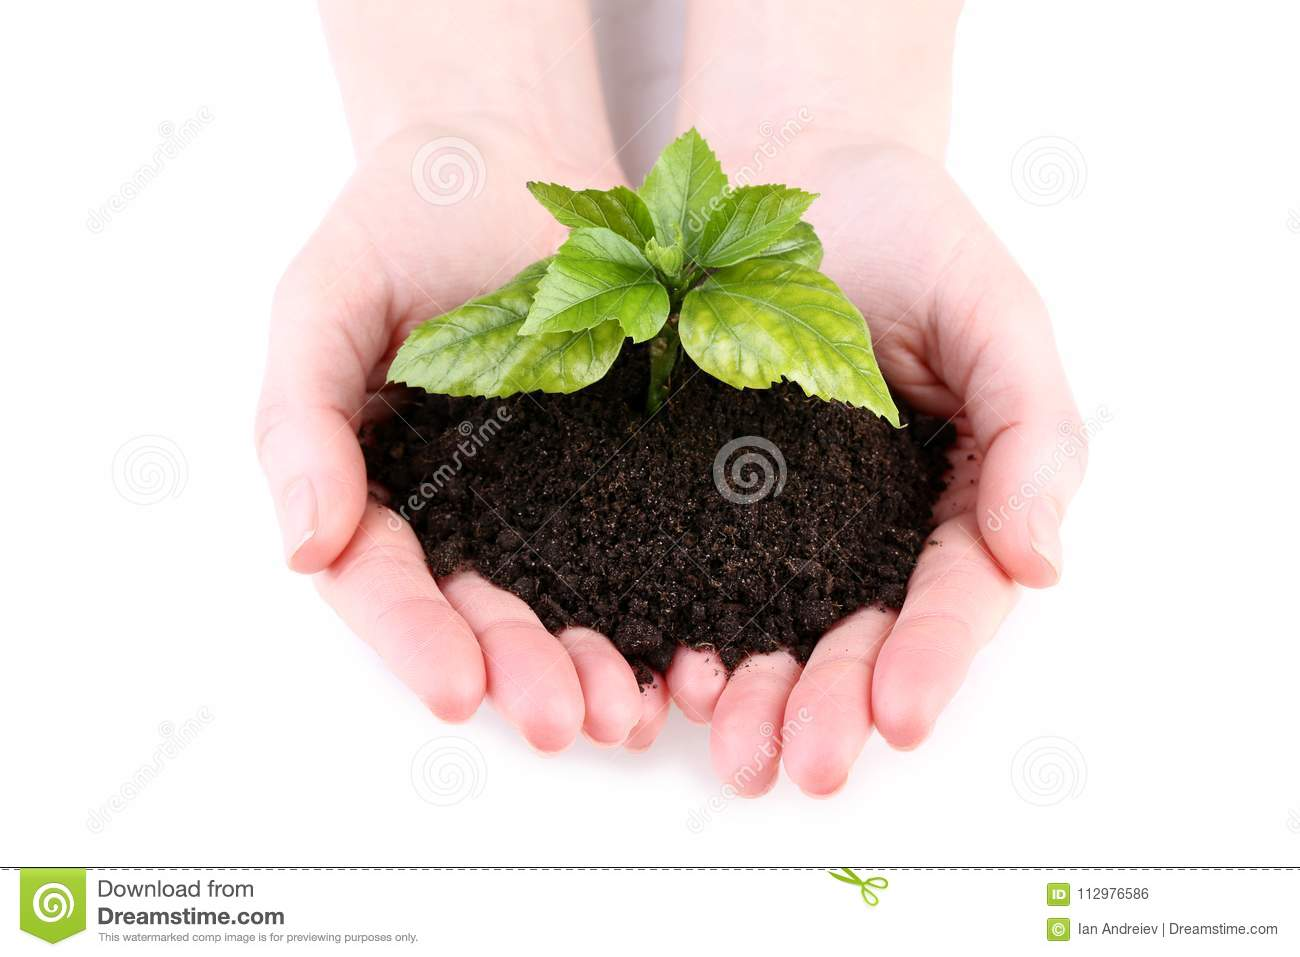 Hands holding young plant